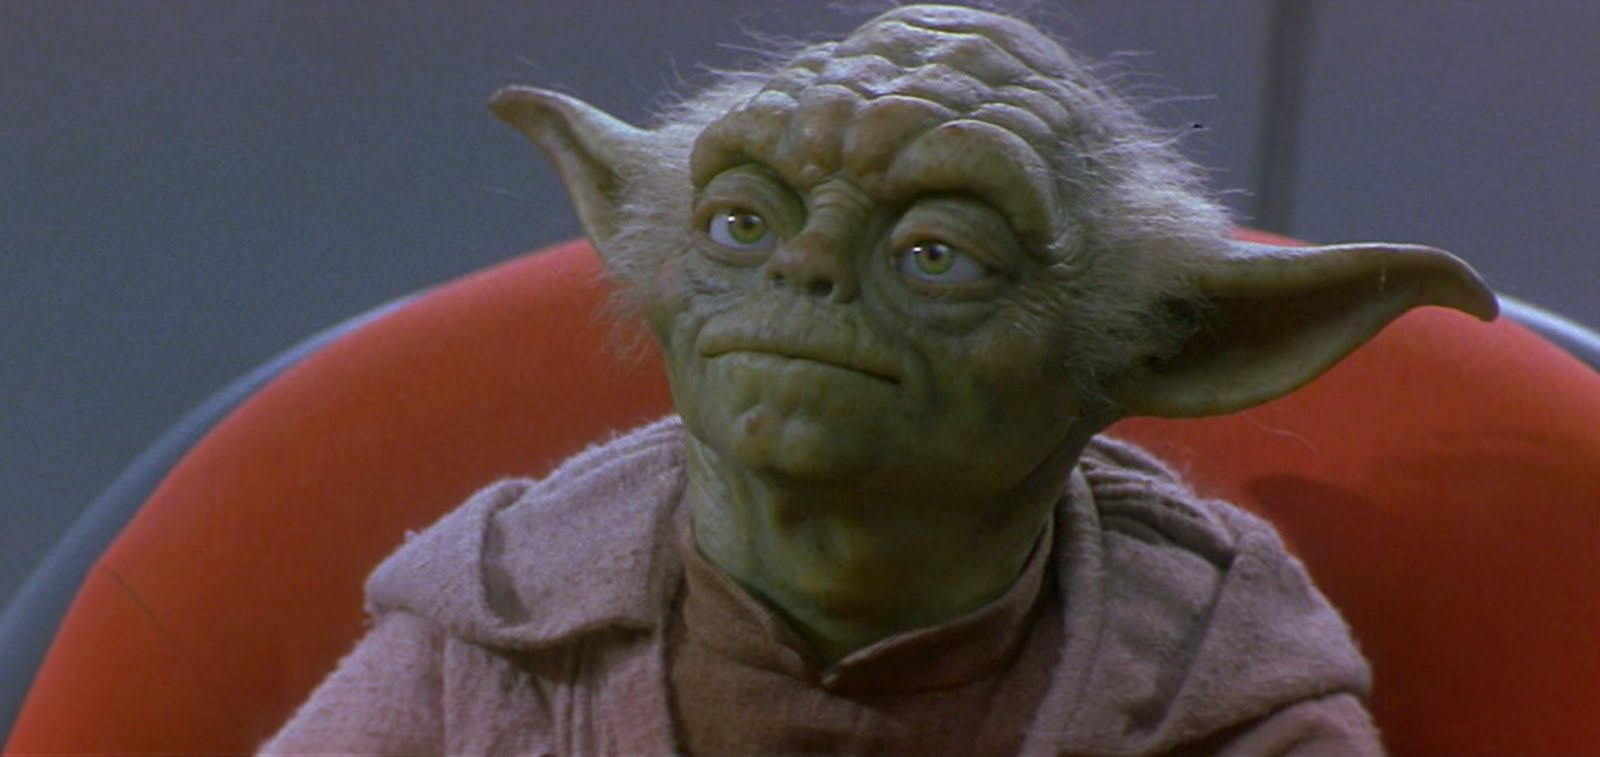 http://dgtlysmitten.files.wordpress.com/2011/05/yoda-phantom-menace.jpg